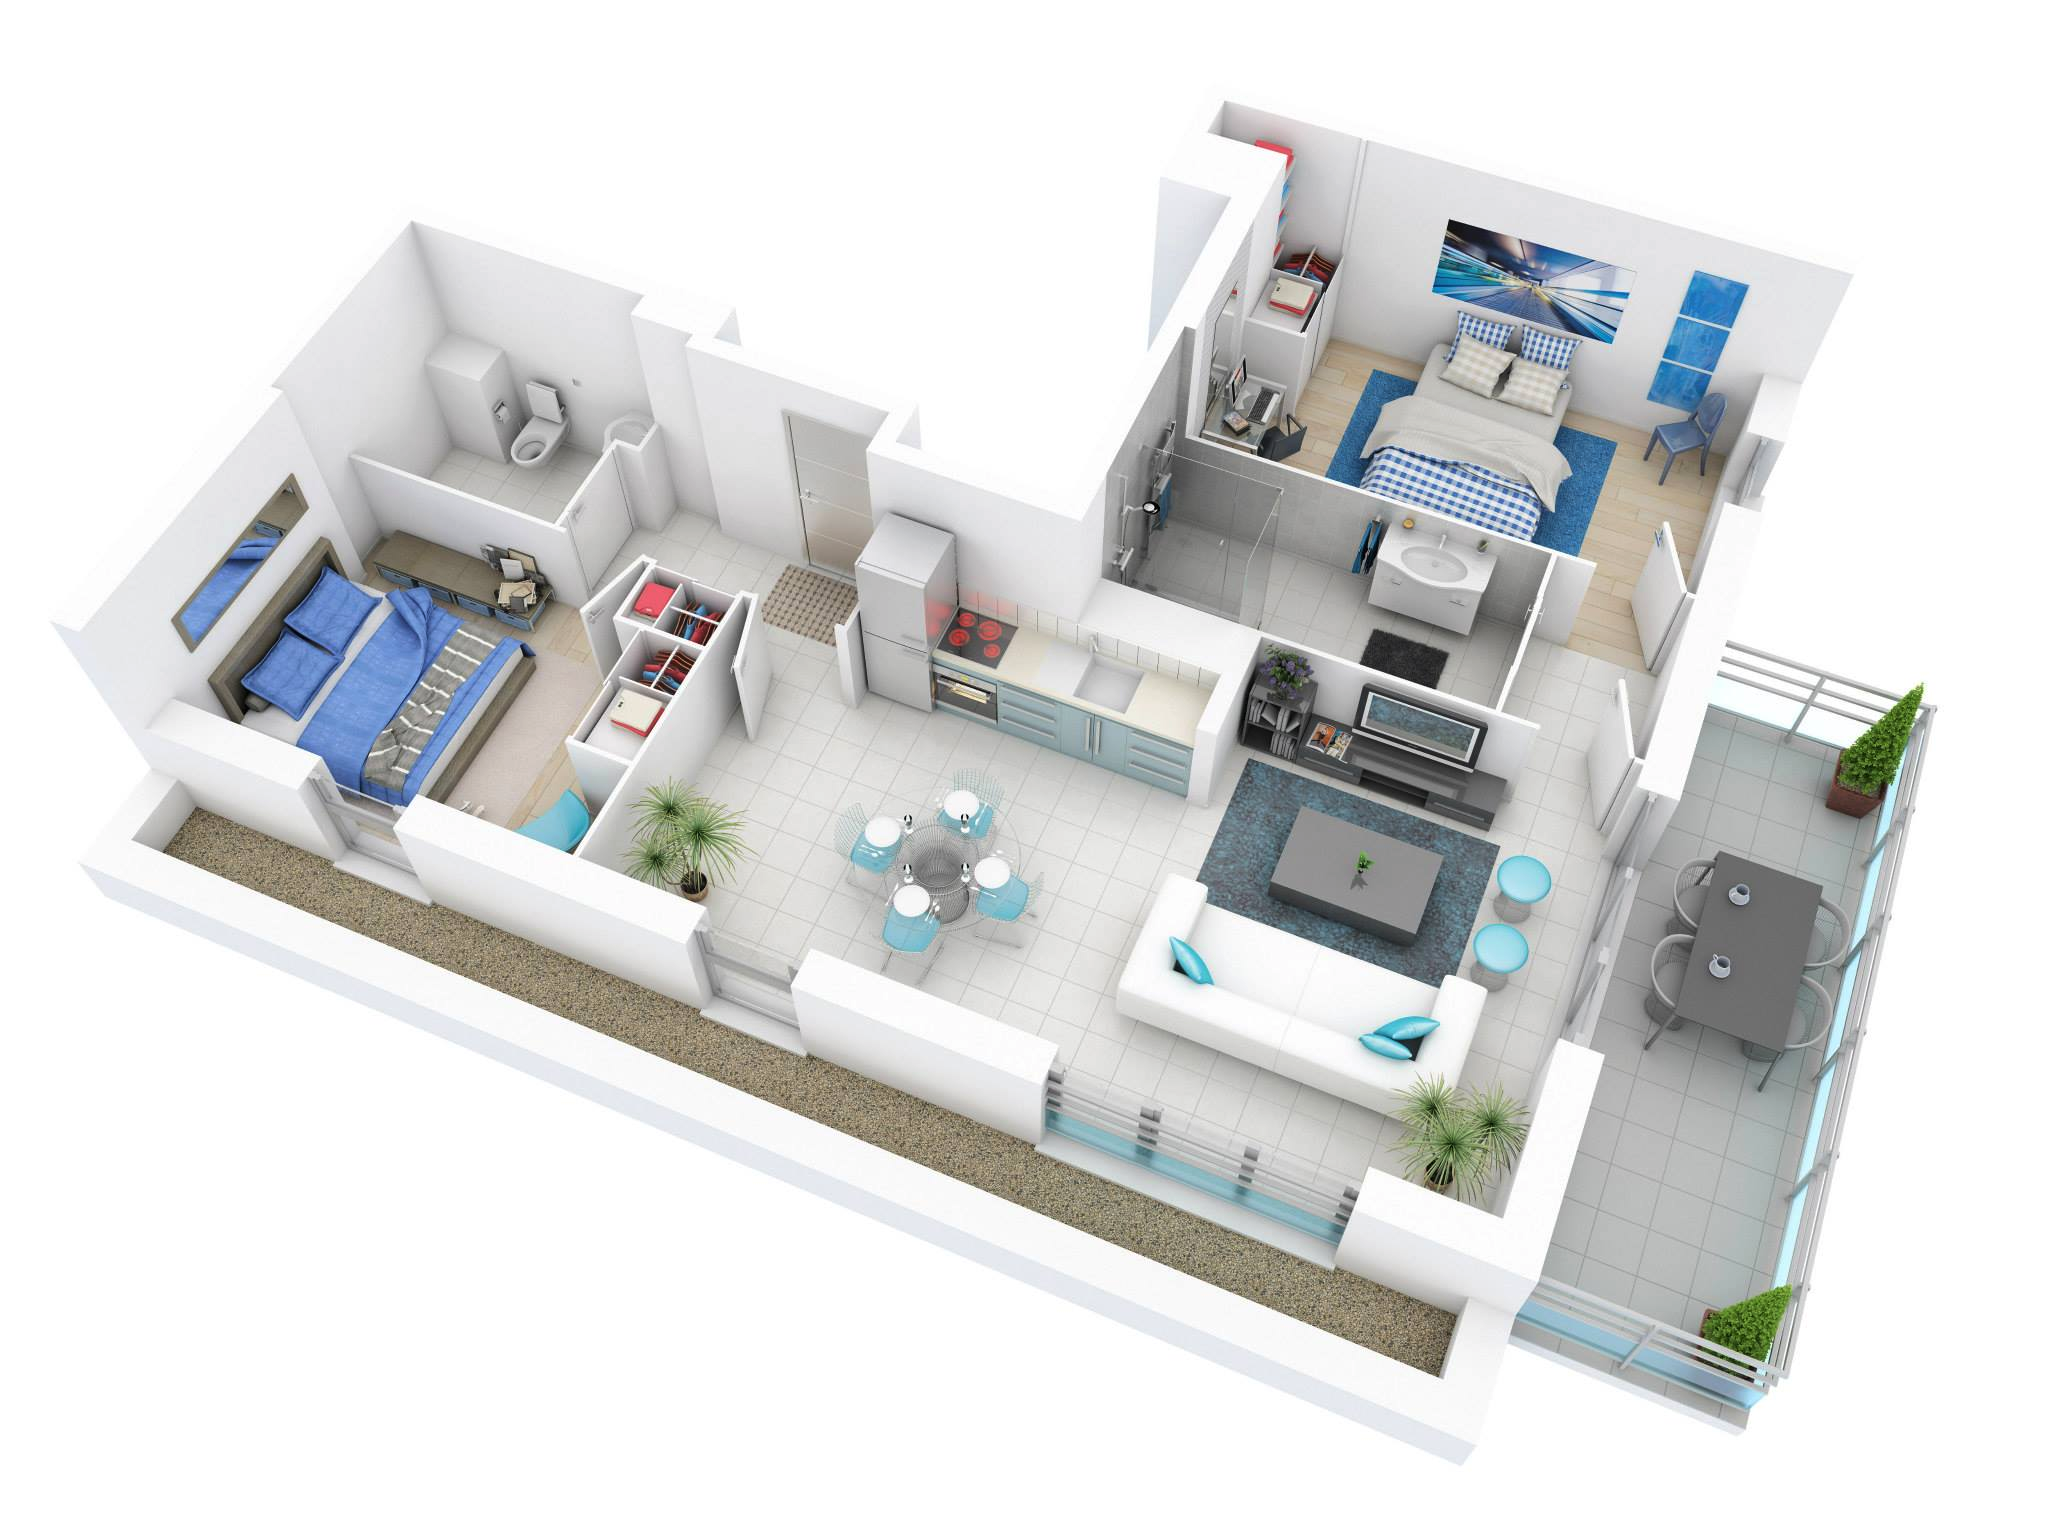 25 more 2 bedroom 3d floor plans - Small 3 Bedroom House Plans 2